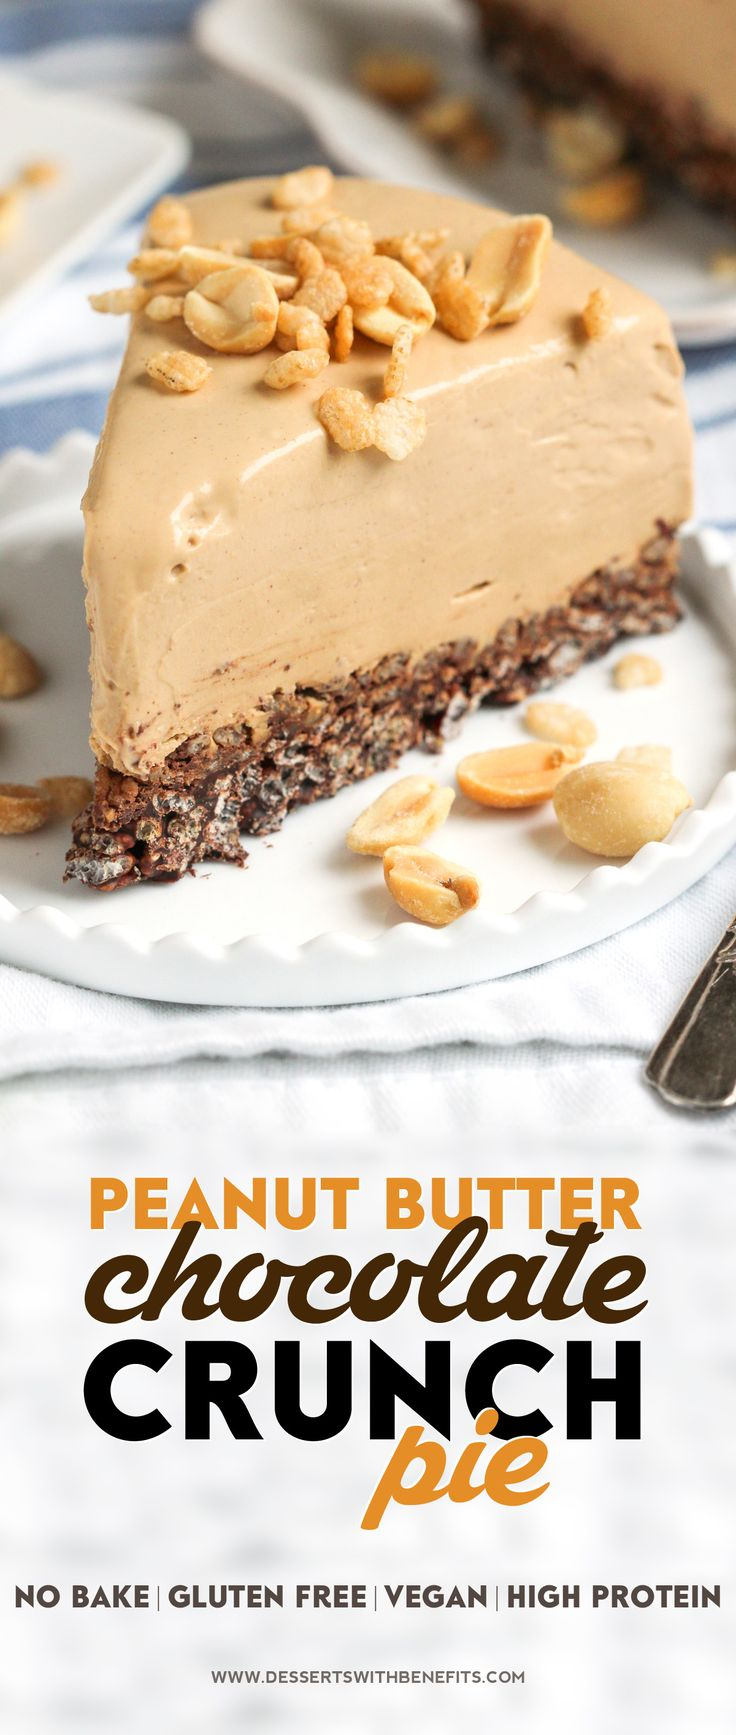 Healthy Peanut Butter Chocolate Crunch Pie -- a thick, rich, and delicious peanut butter filling atop a crunchy and decadent chocolate base! (no bake, low sugar, high protein, high fiber, gluten free, dairy free, vegan)